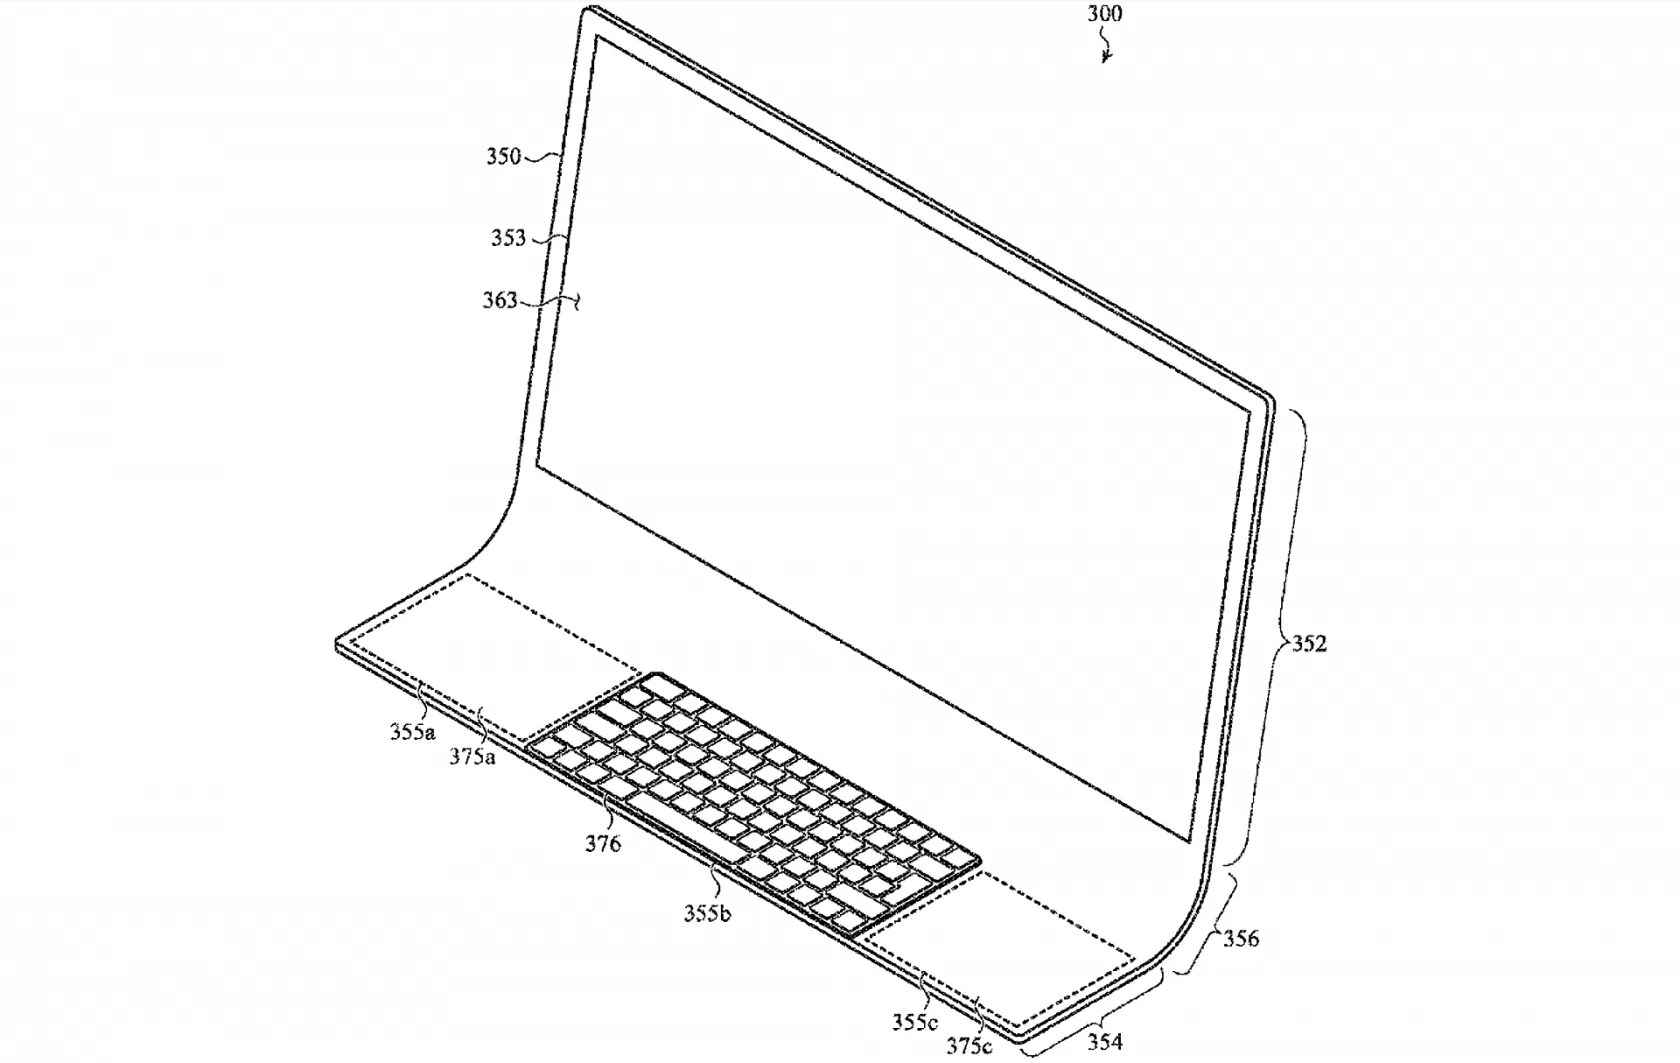 Apple could be planning to build a Mac using a single